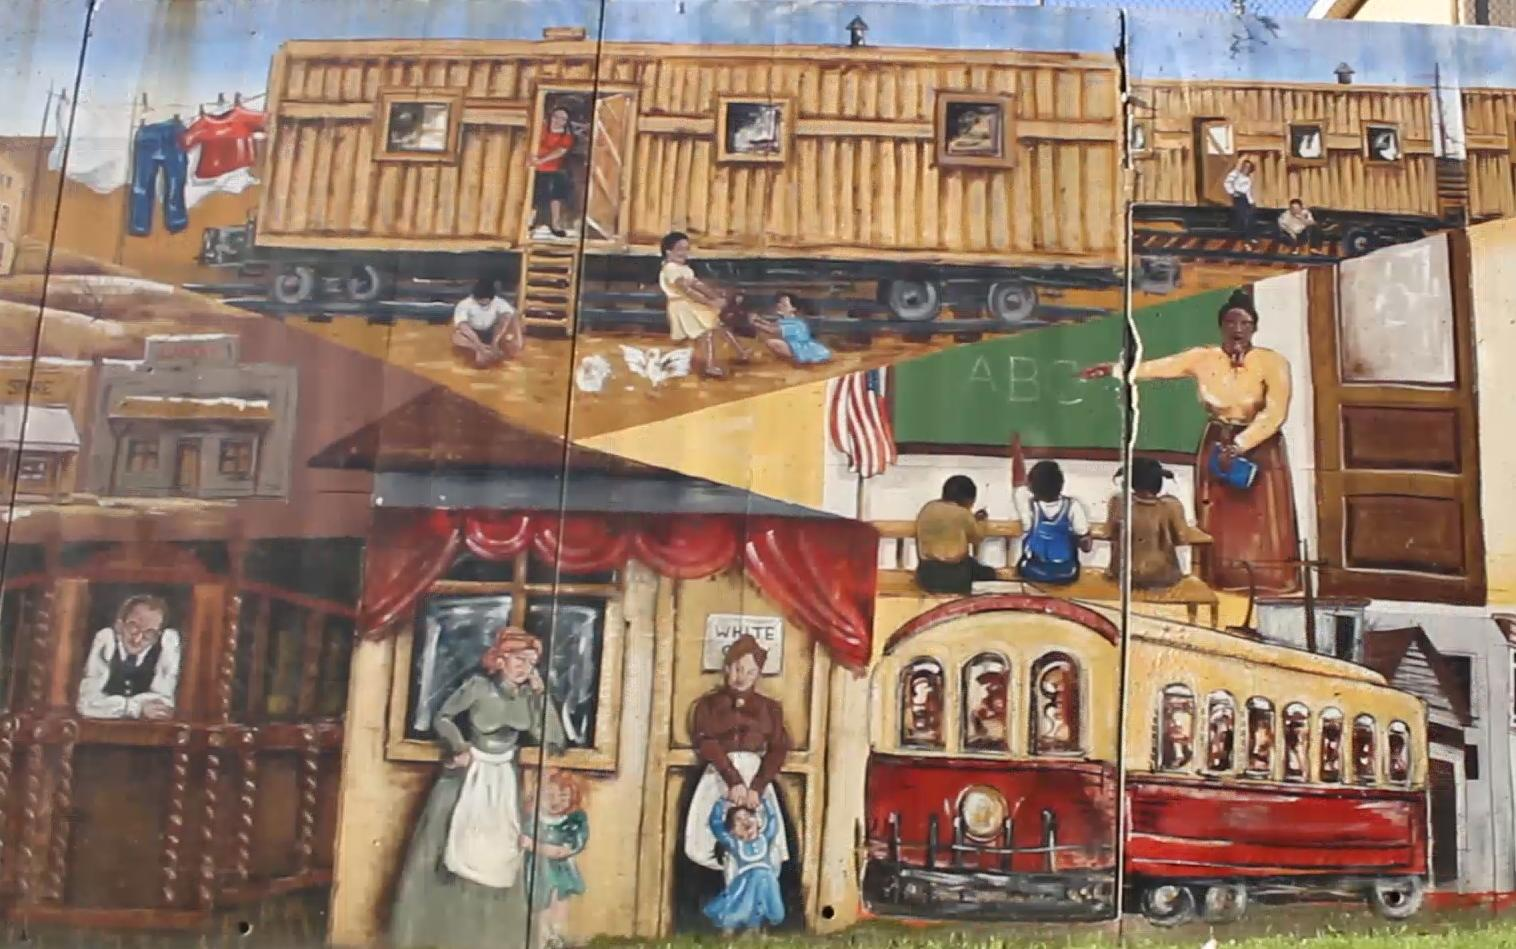 A mural in Argentine depicts Mexican railroad workers living in the boxcars that brought them to Argentine